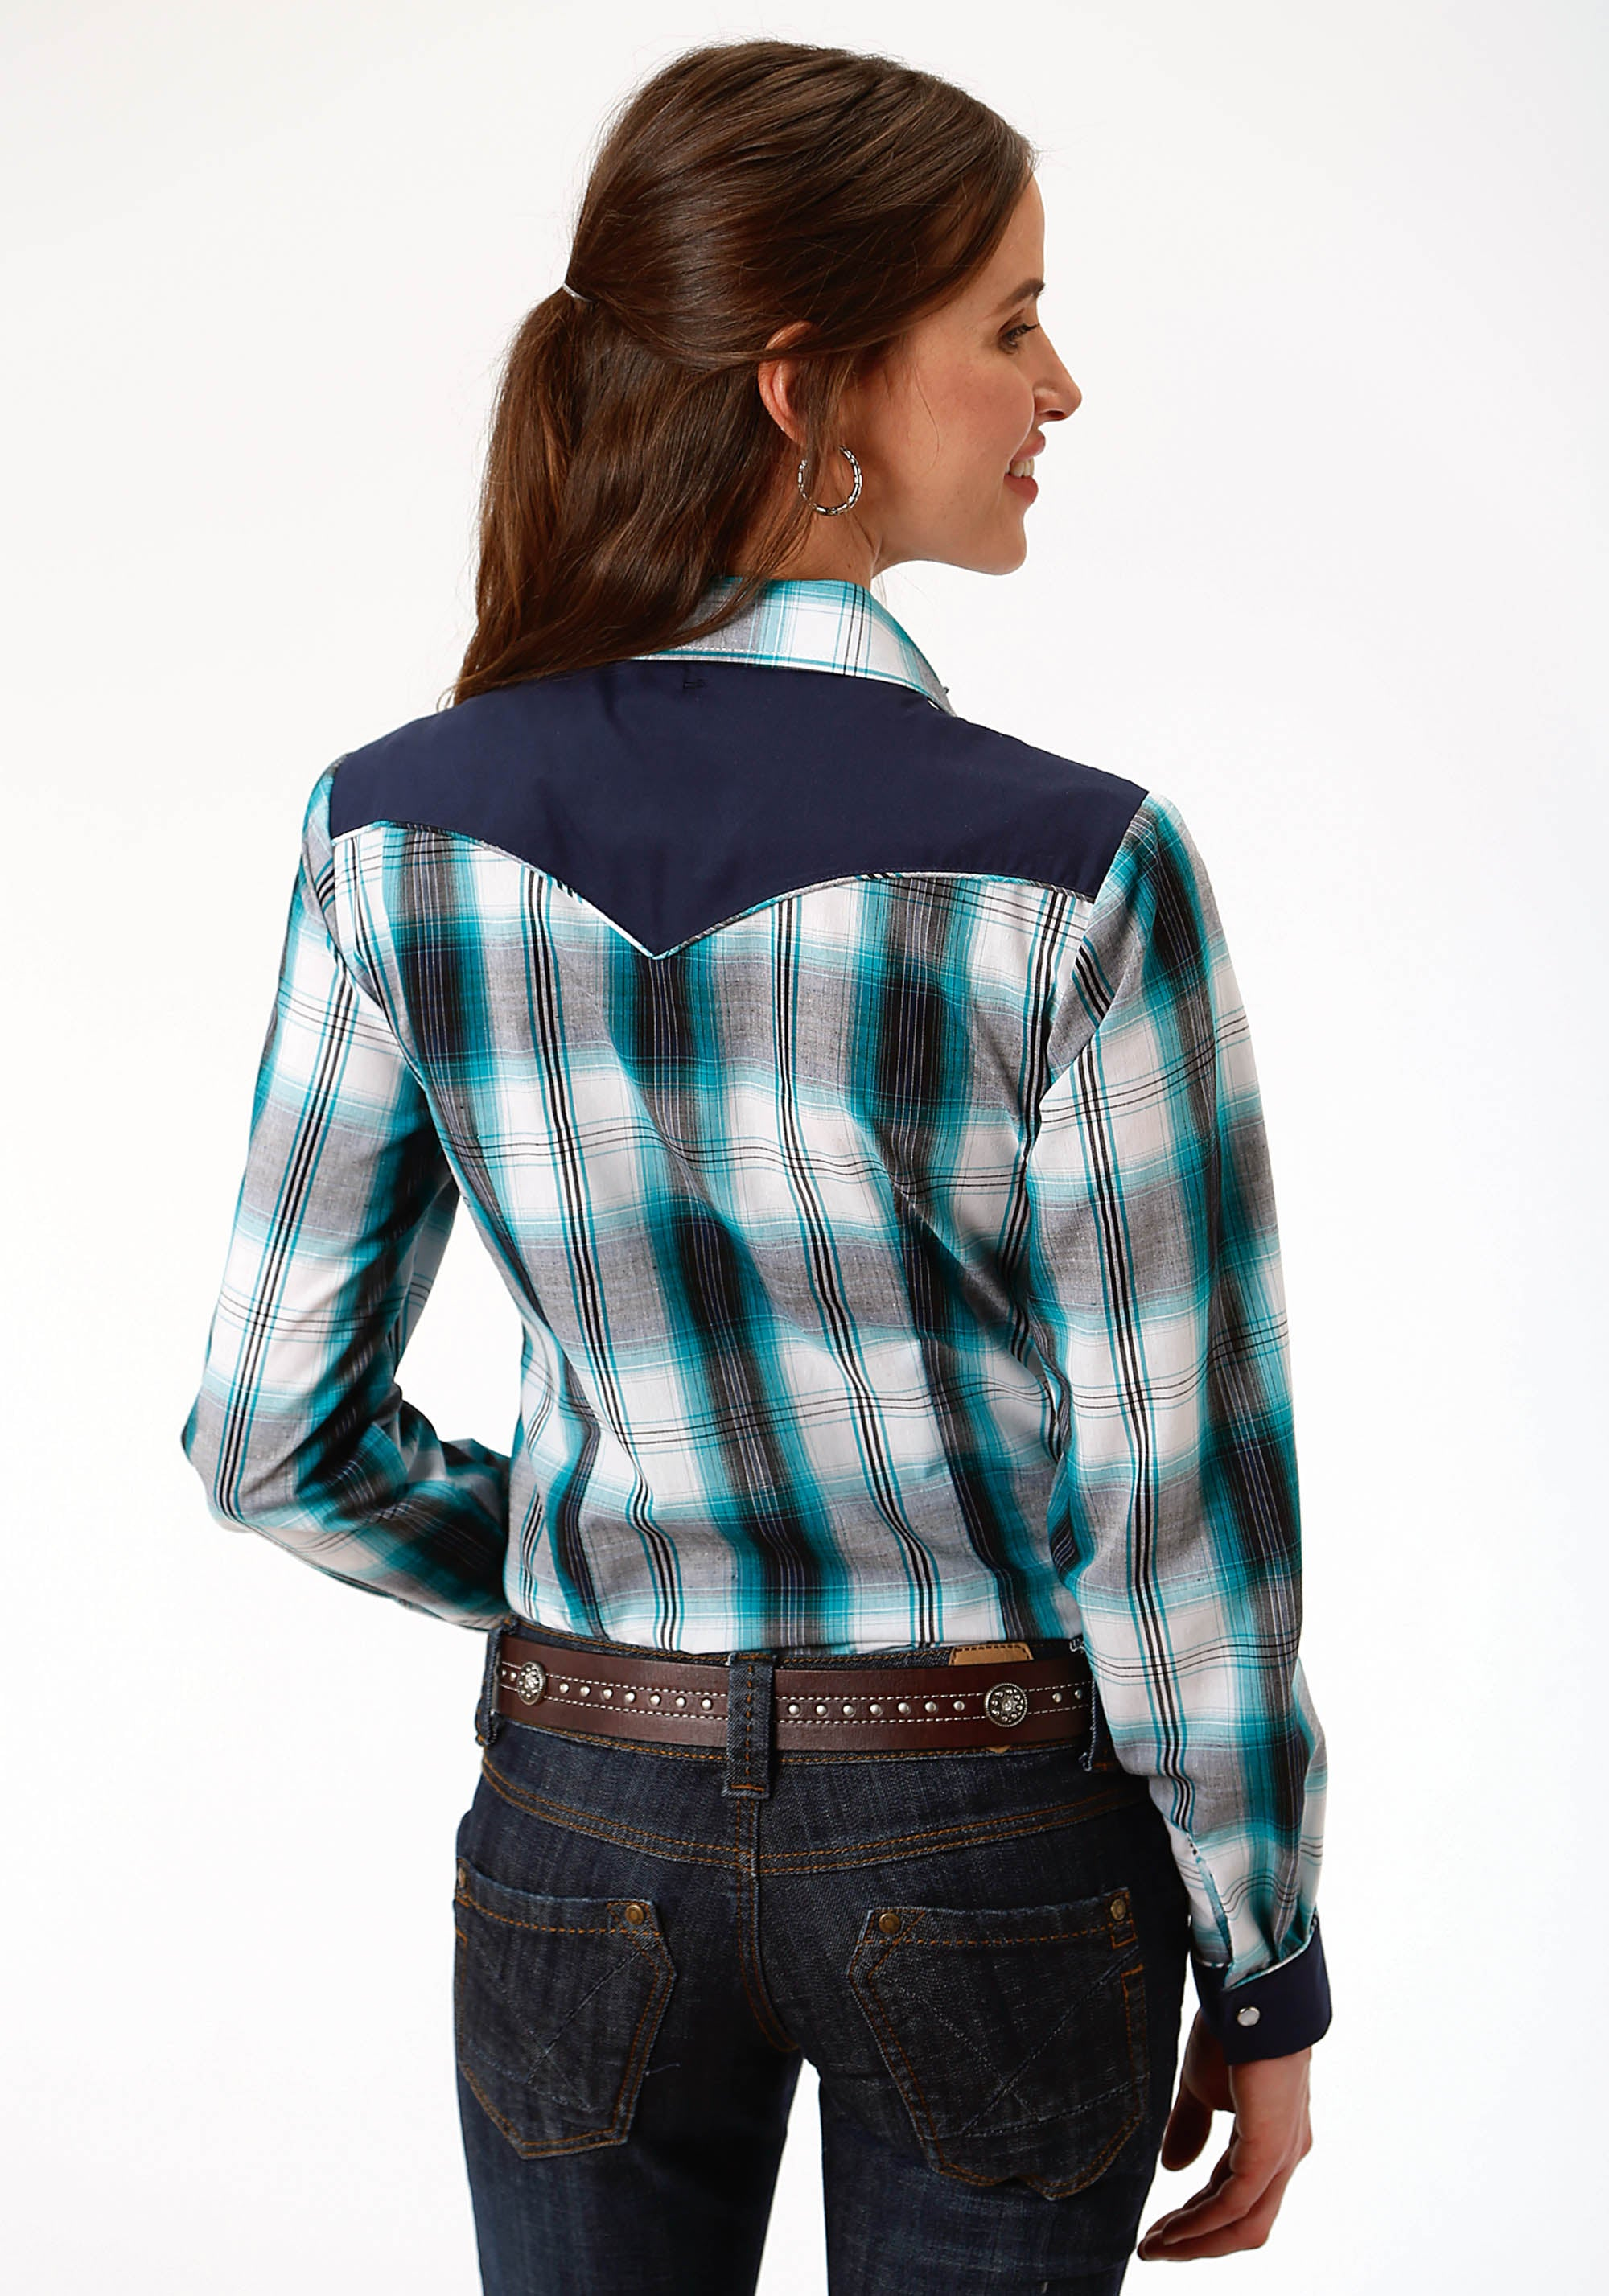 ROPER WOMENS BLUE 9912 TURQ, NAVY & WHITE PLAID KARMAN SPECIAL STYLES LONG SLEEVE